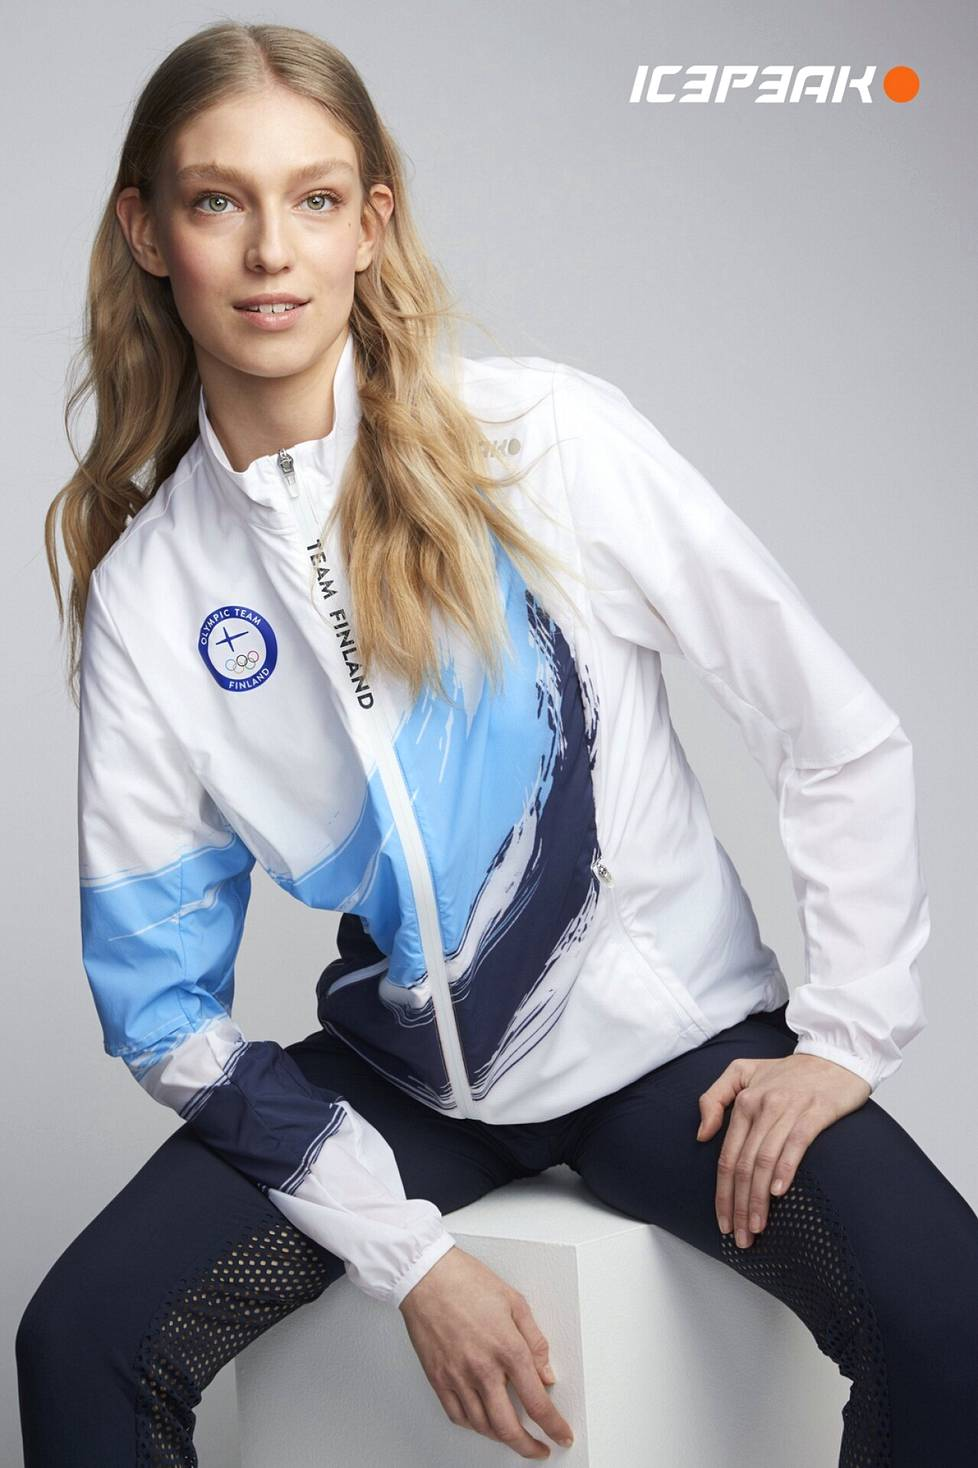 The outfits of the Tokyo 2021 Finnish race team were made by Luhta.